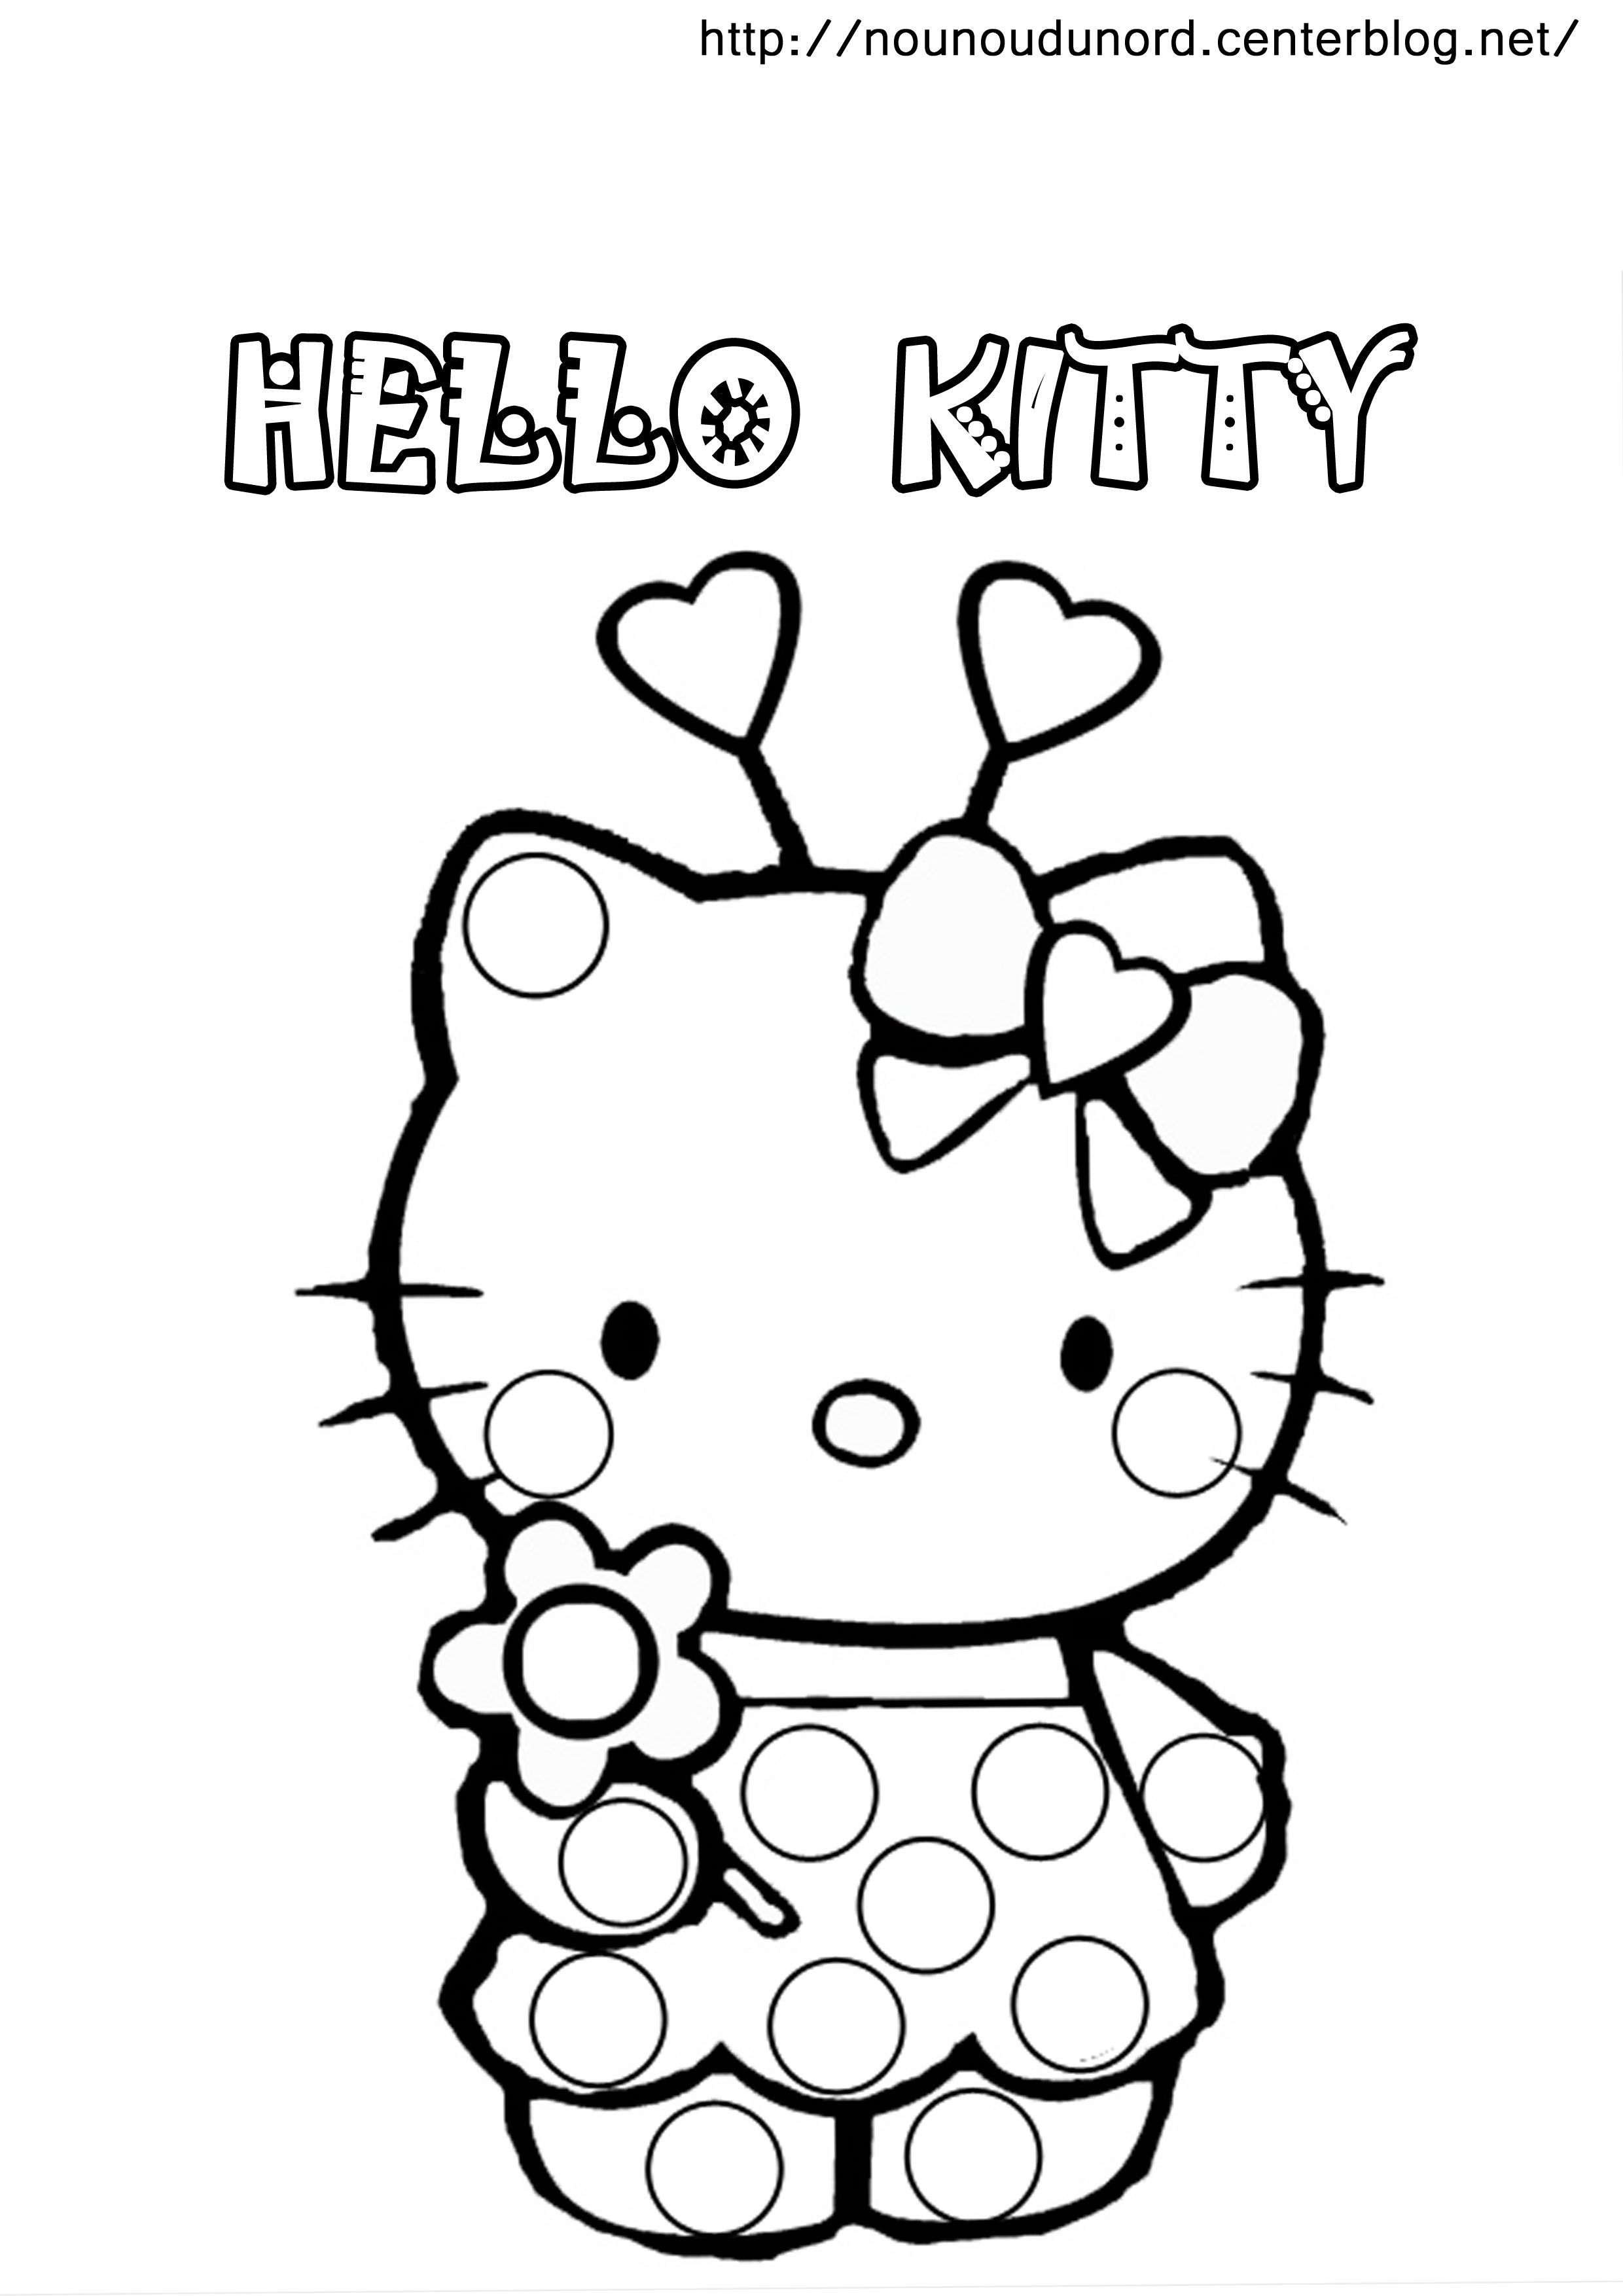 07 14 Huller Hello Kitty